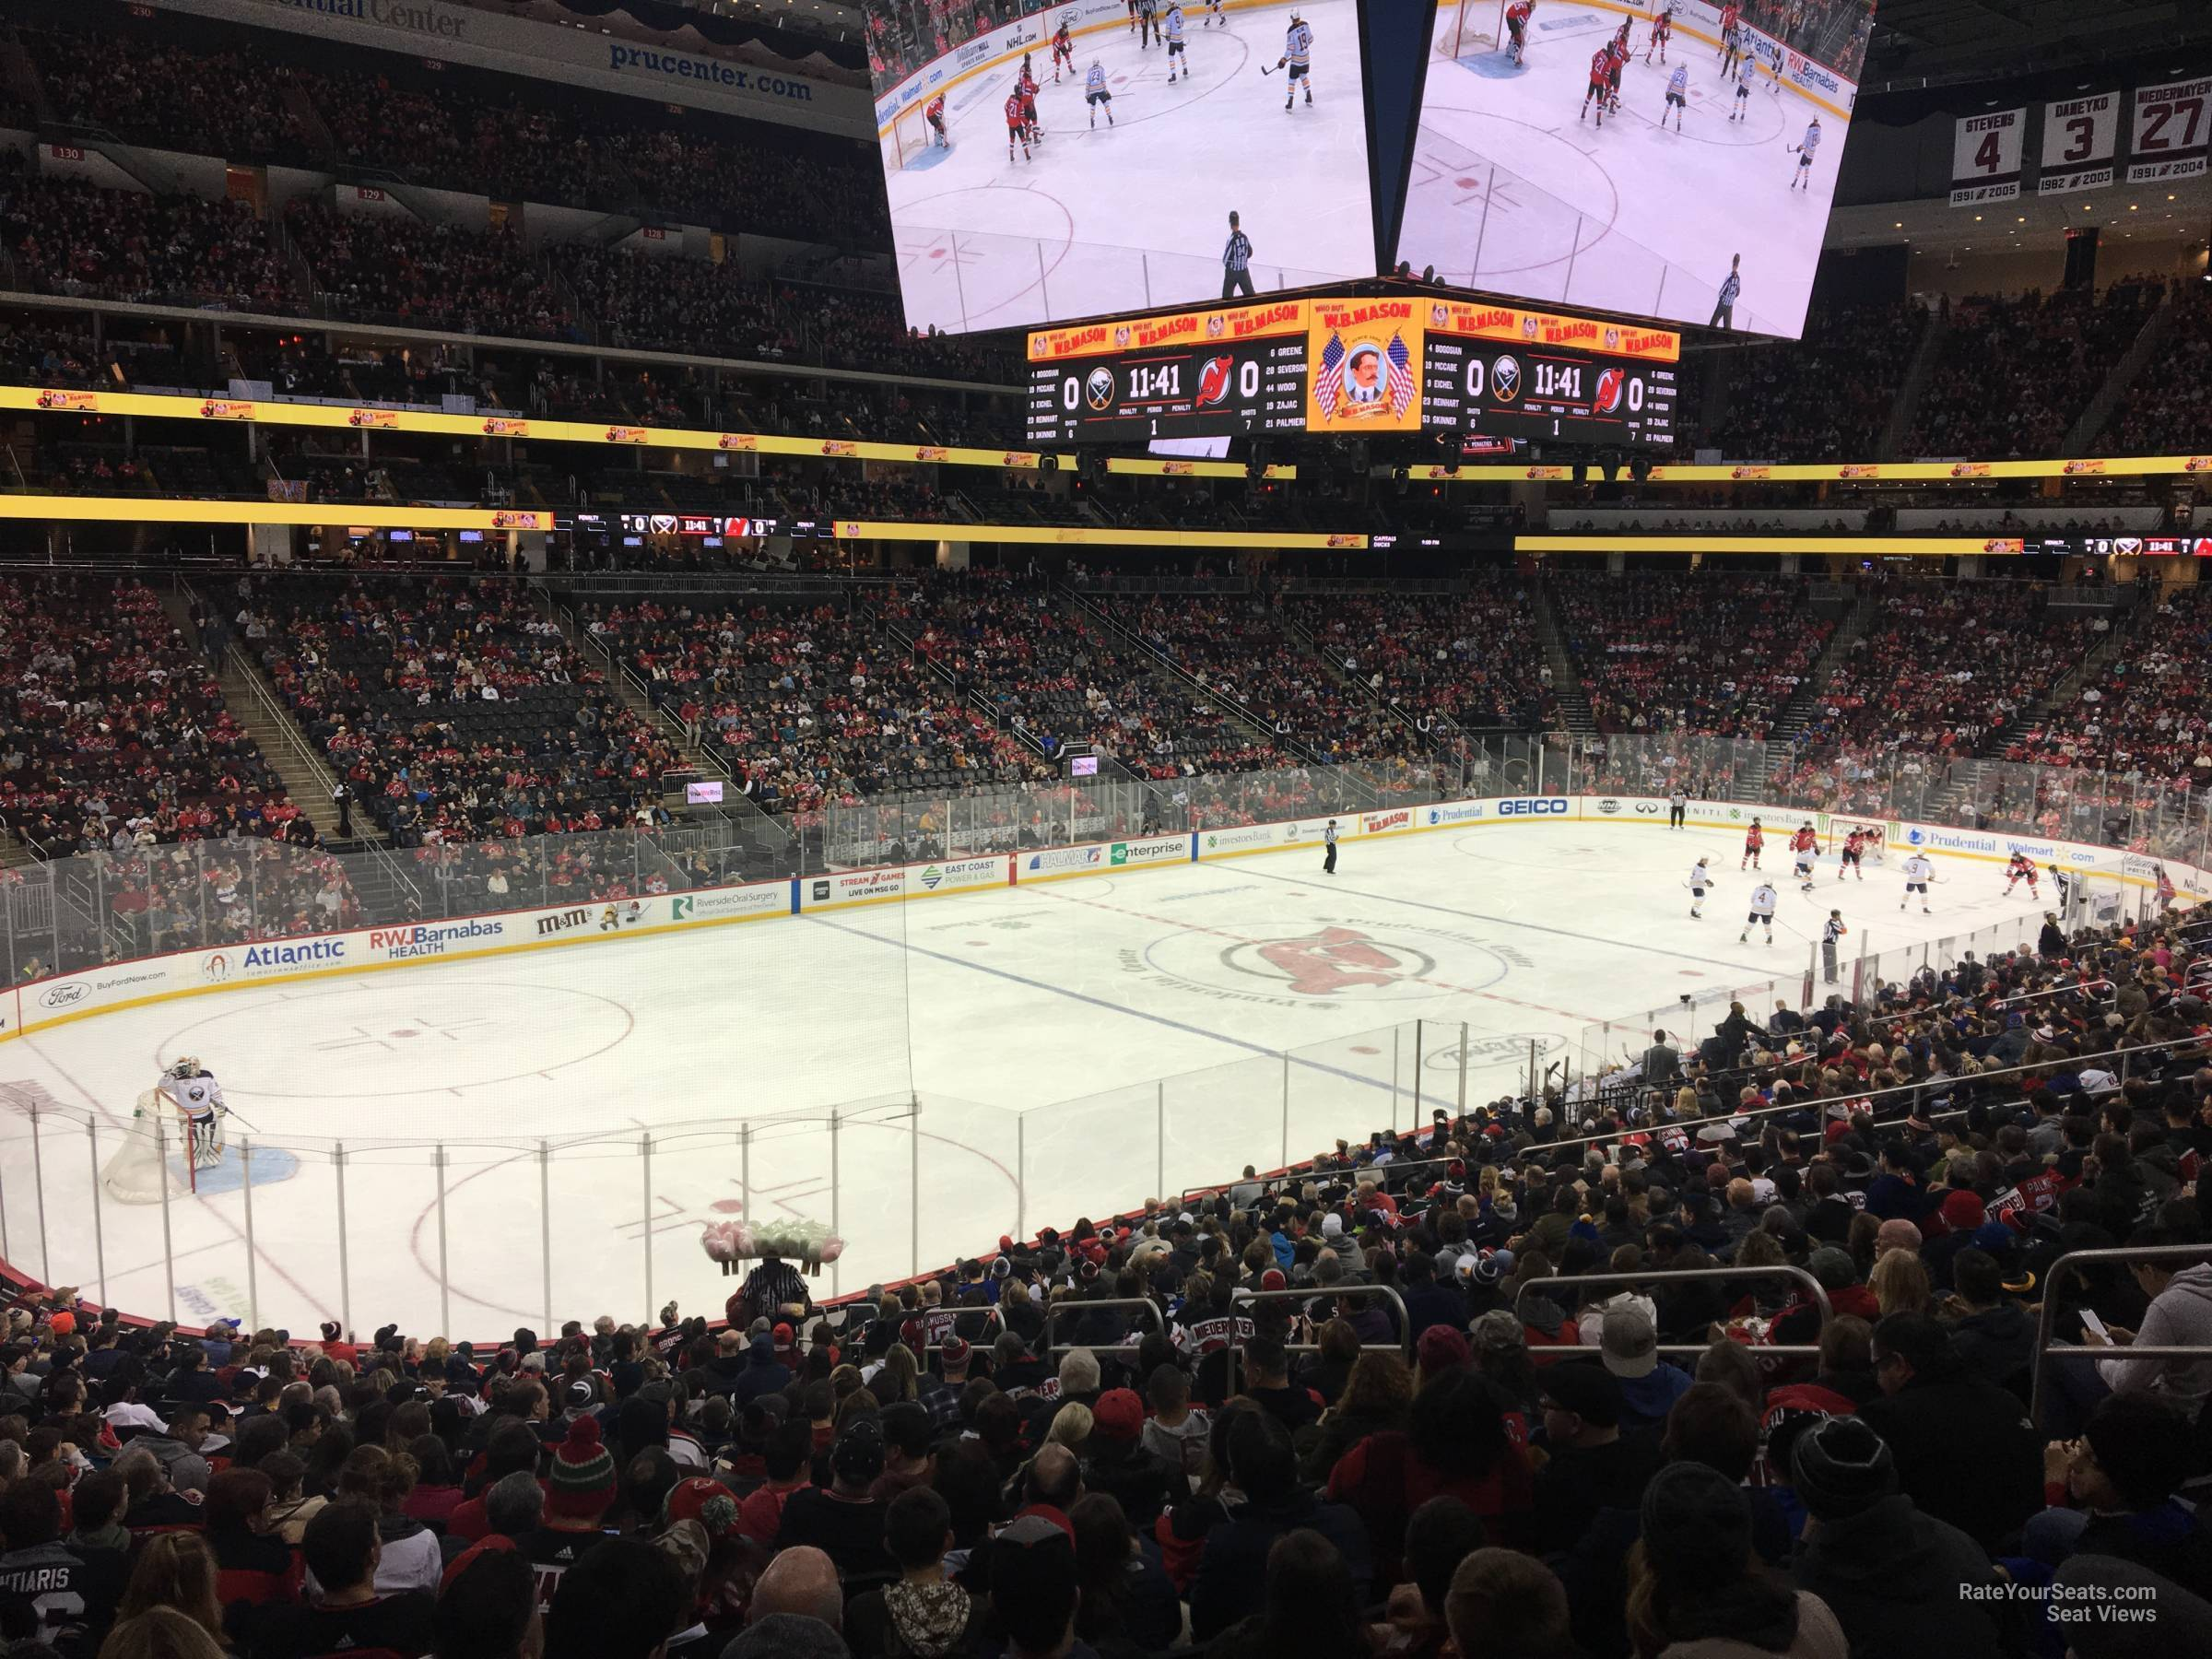 New Jersey Devils Seat View for Prudential Center Section 5, Row 24